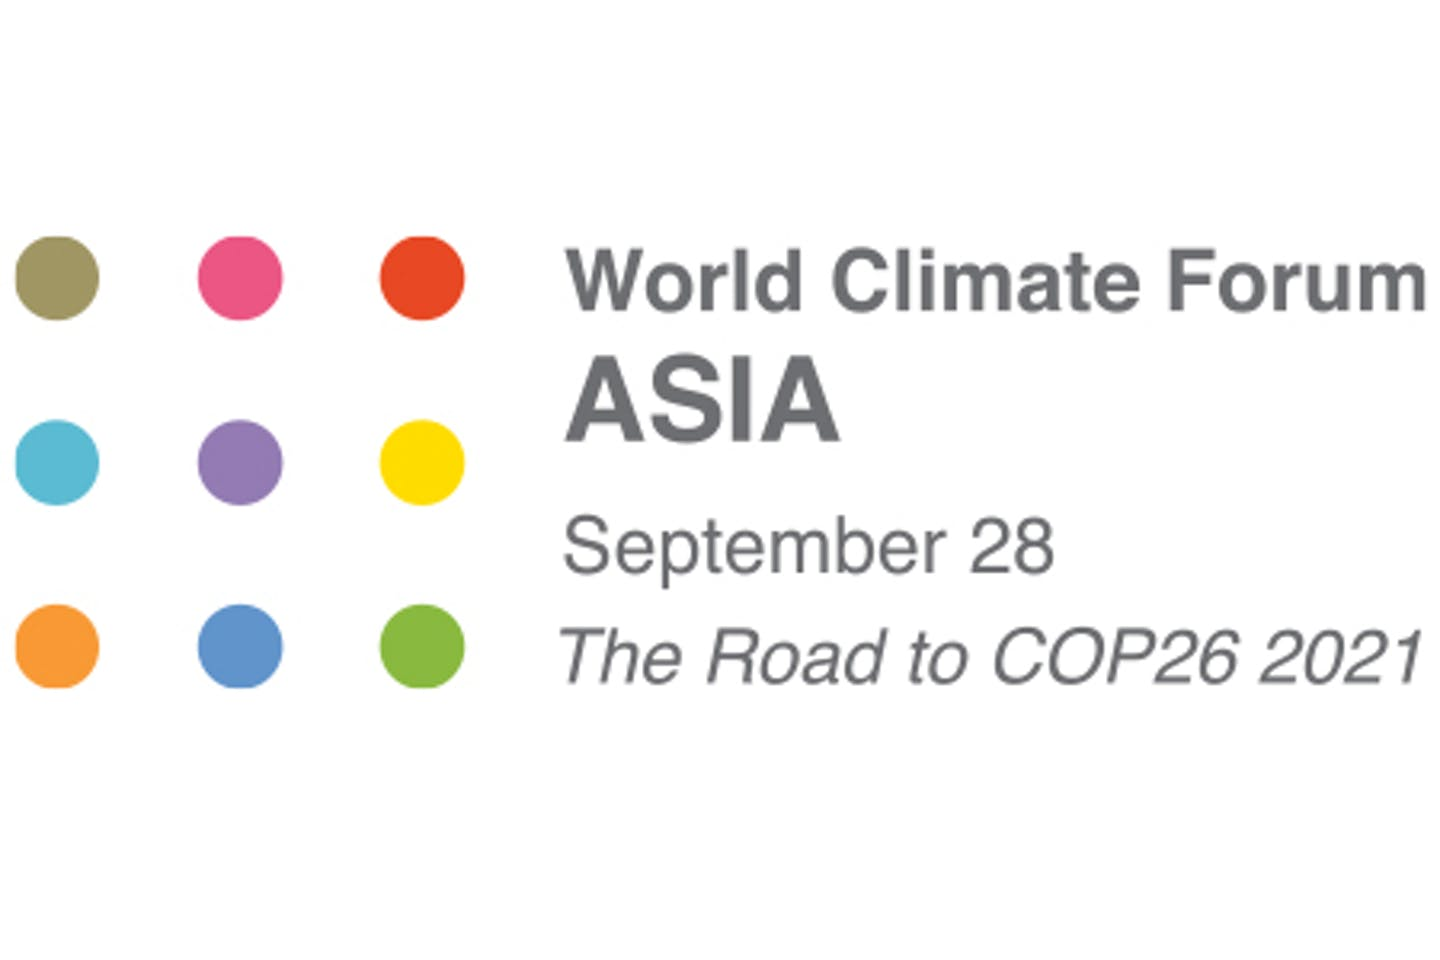 World Climate Forum 2021 Asia